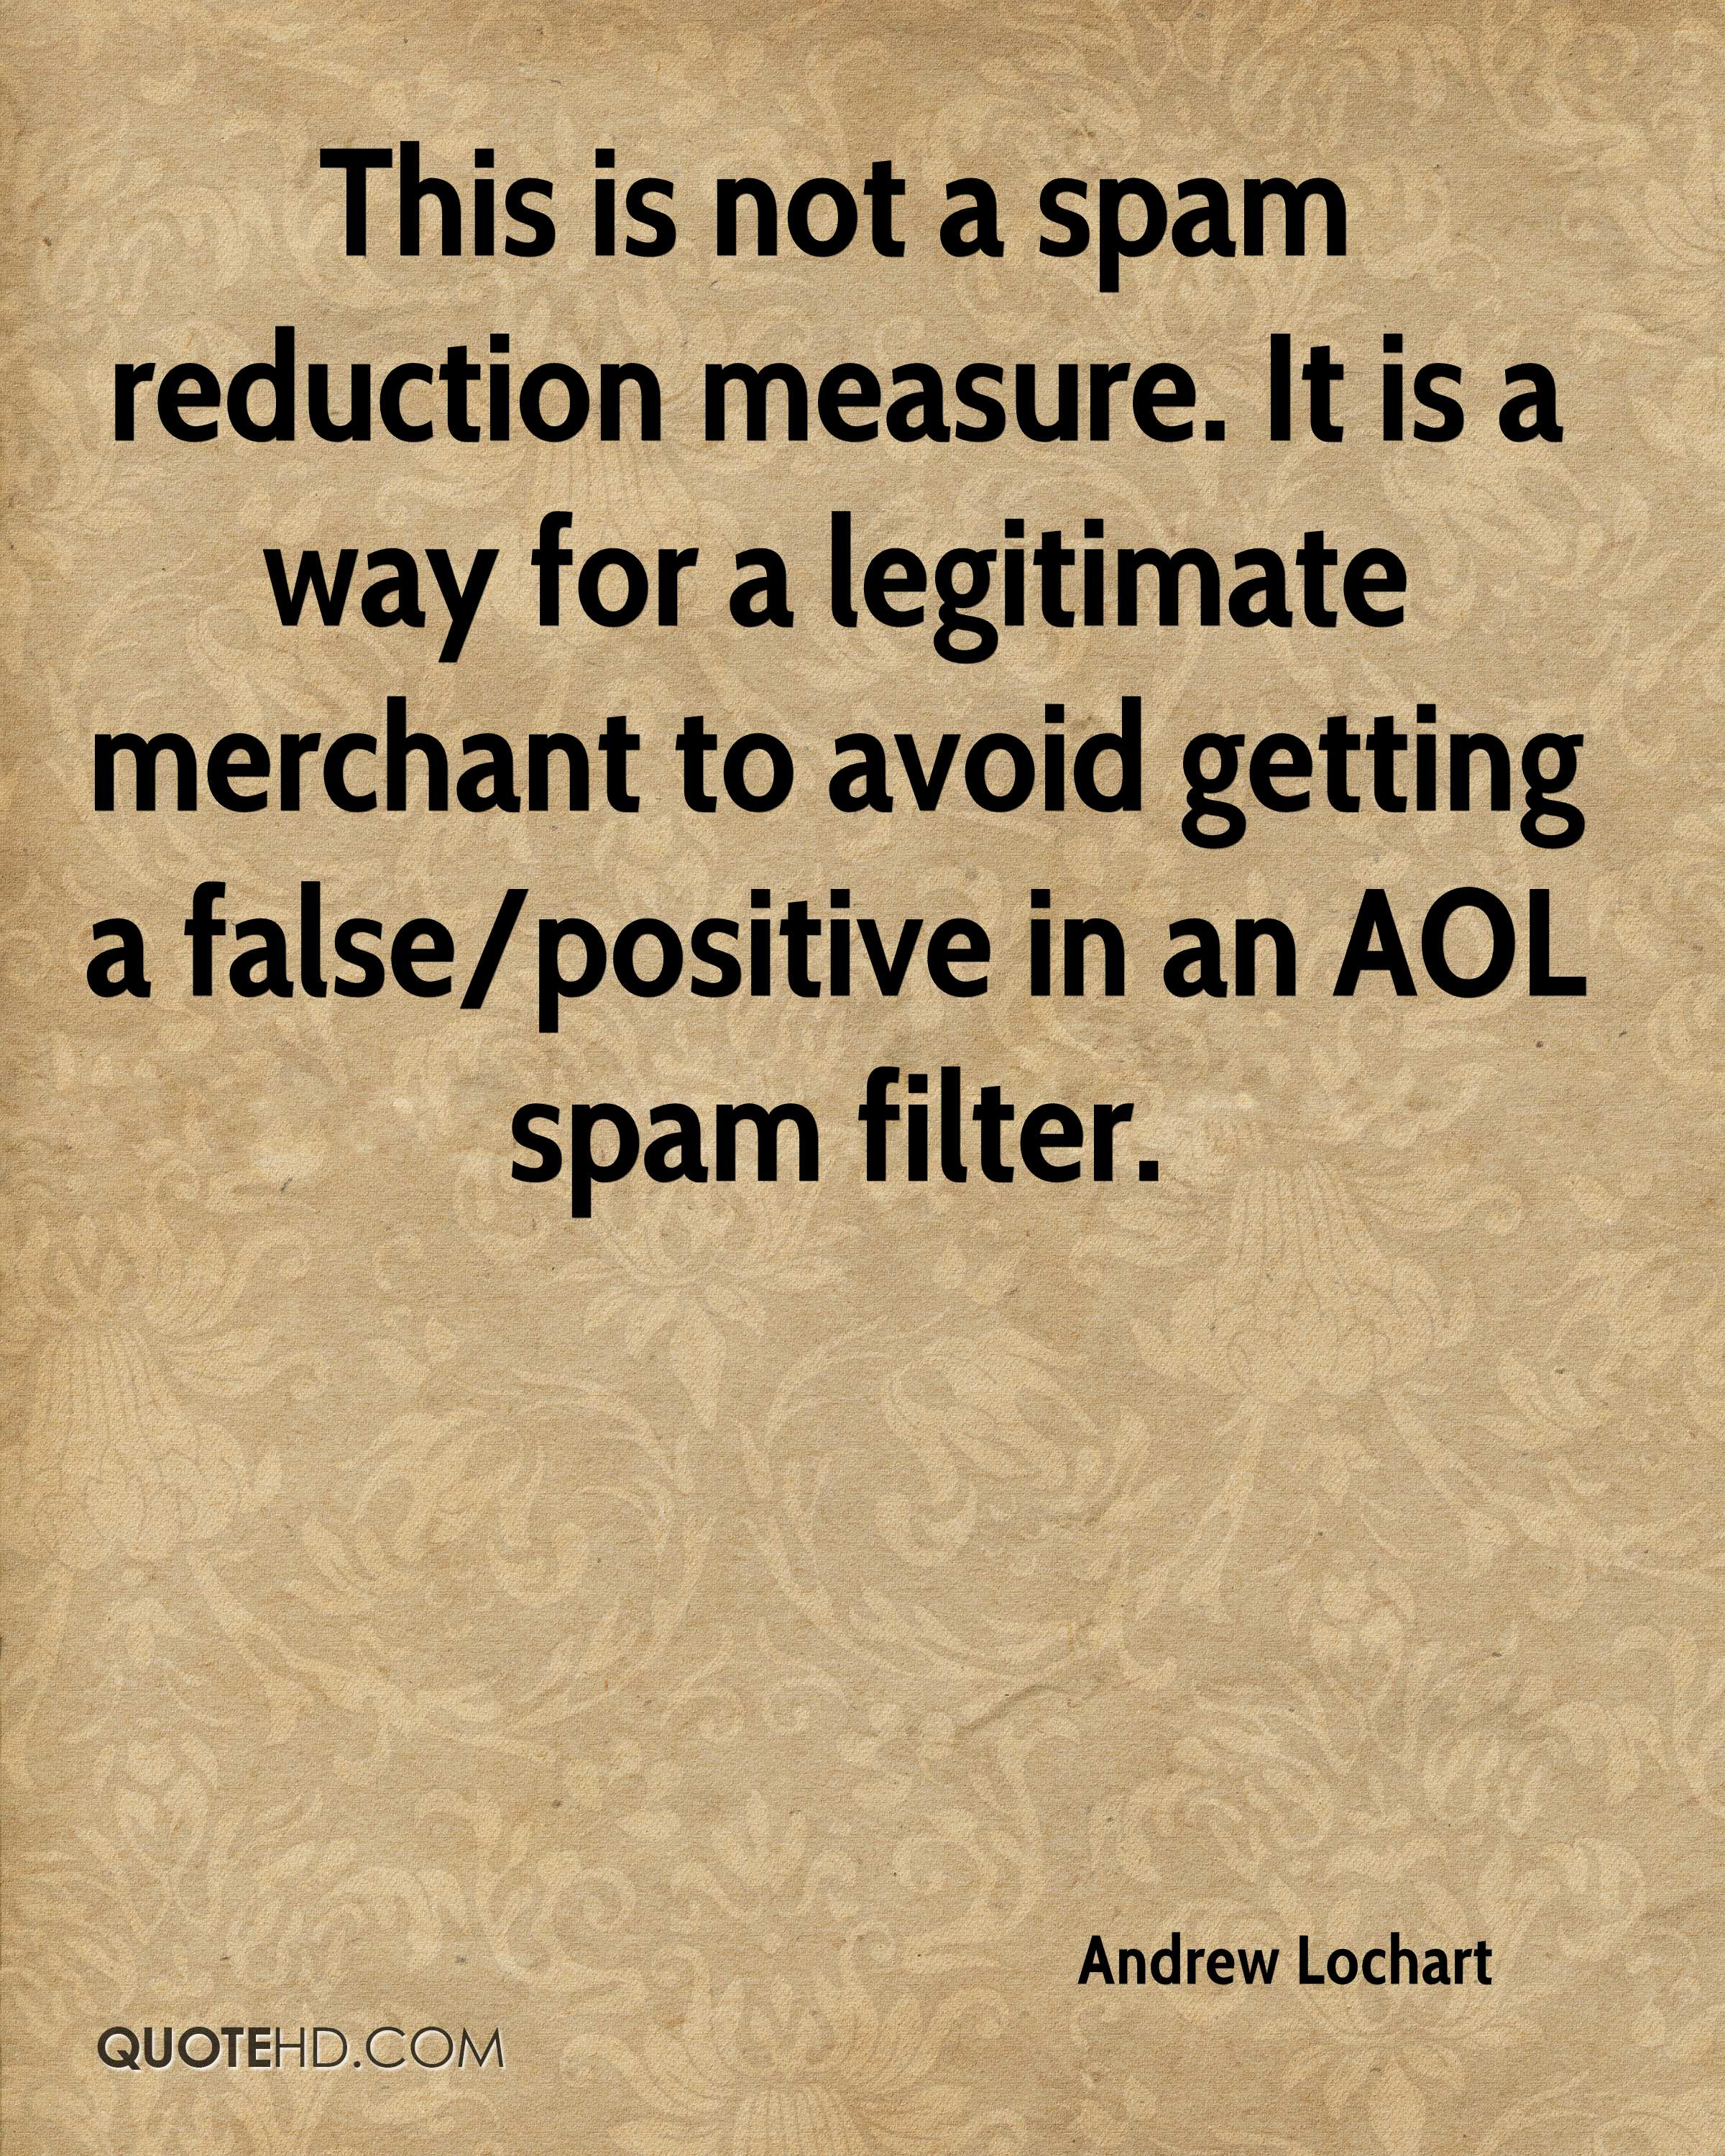 This is not a spam reduction measure. It is a way for a legitimate merchant to avoid getting a false/positive in an AOL spam filter.